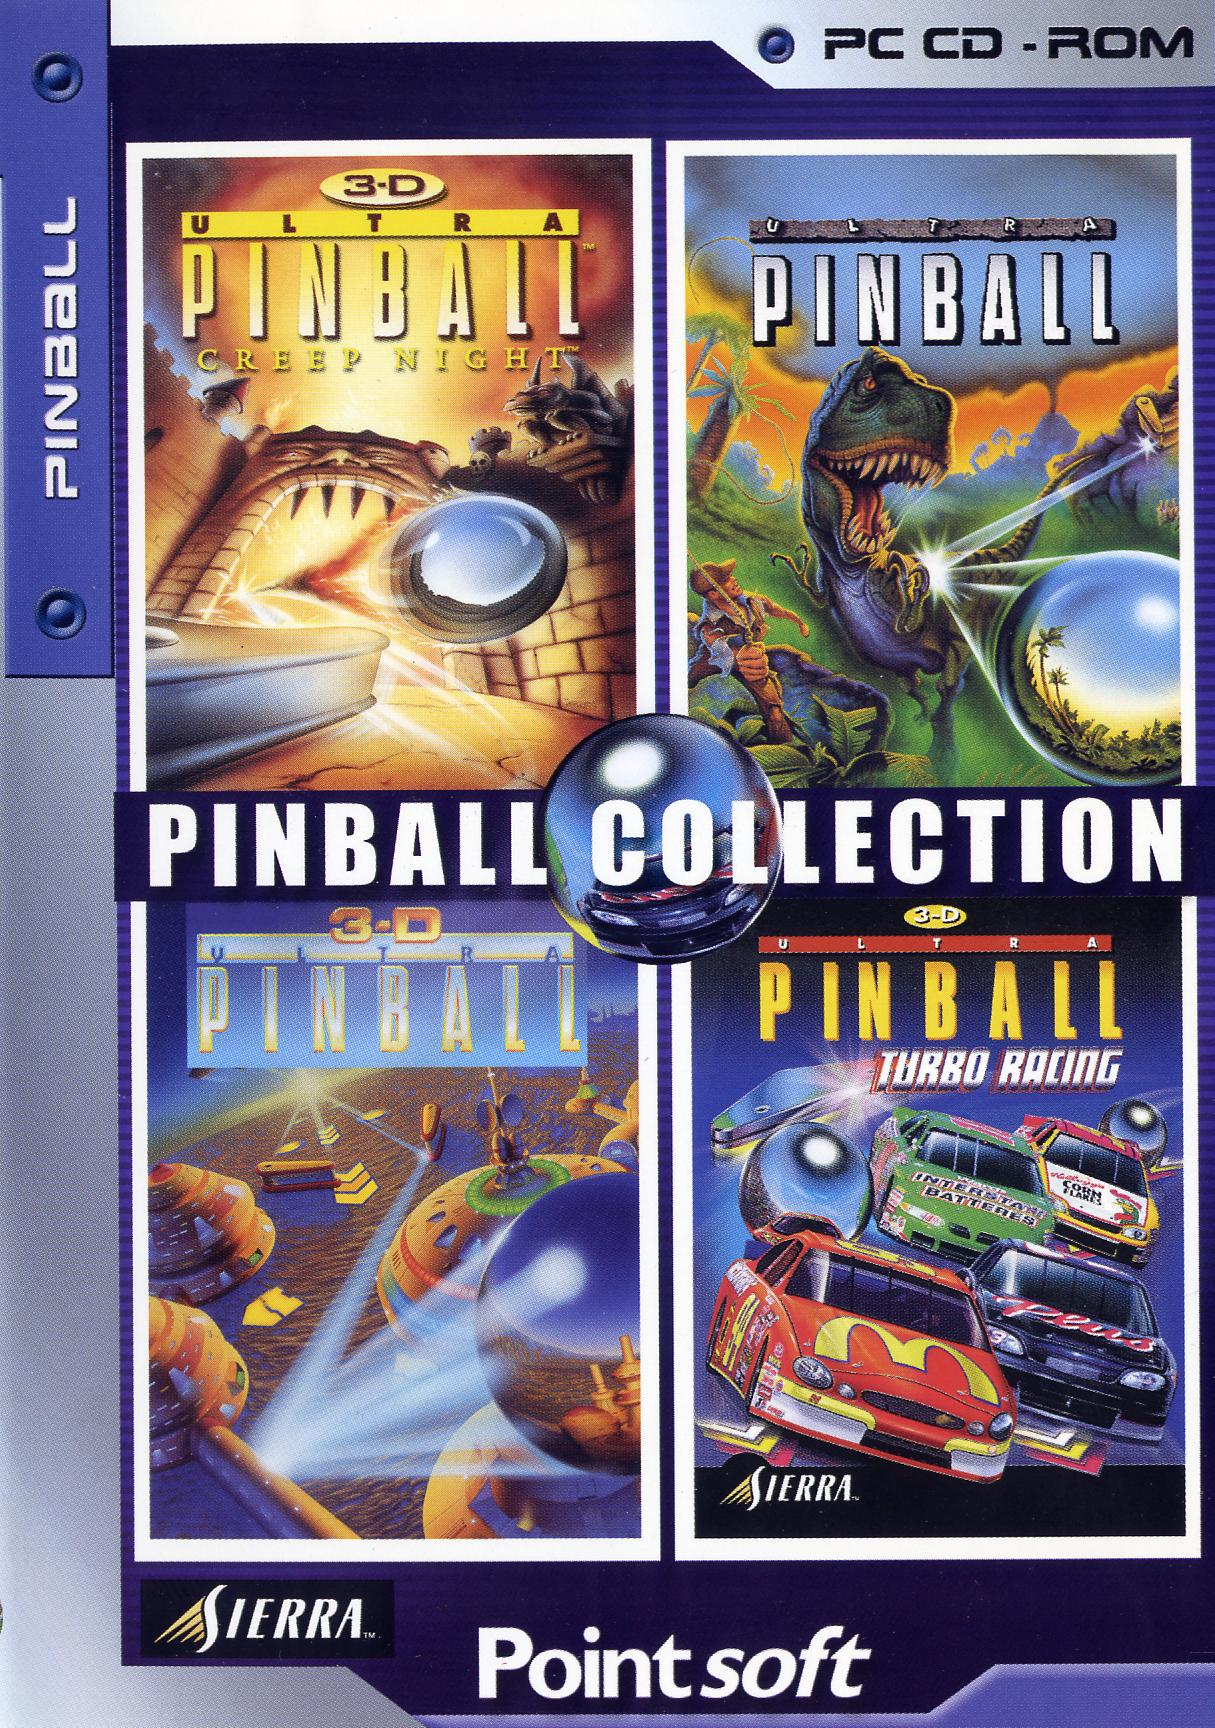 image : /images_abandonware/compilations/94PinballCollectionFront.jpg